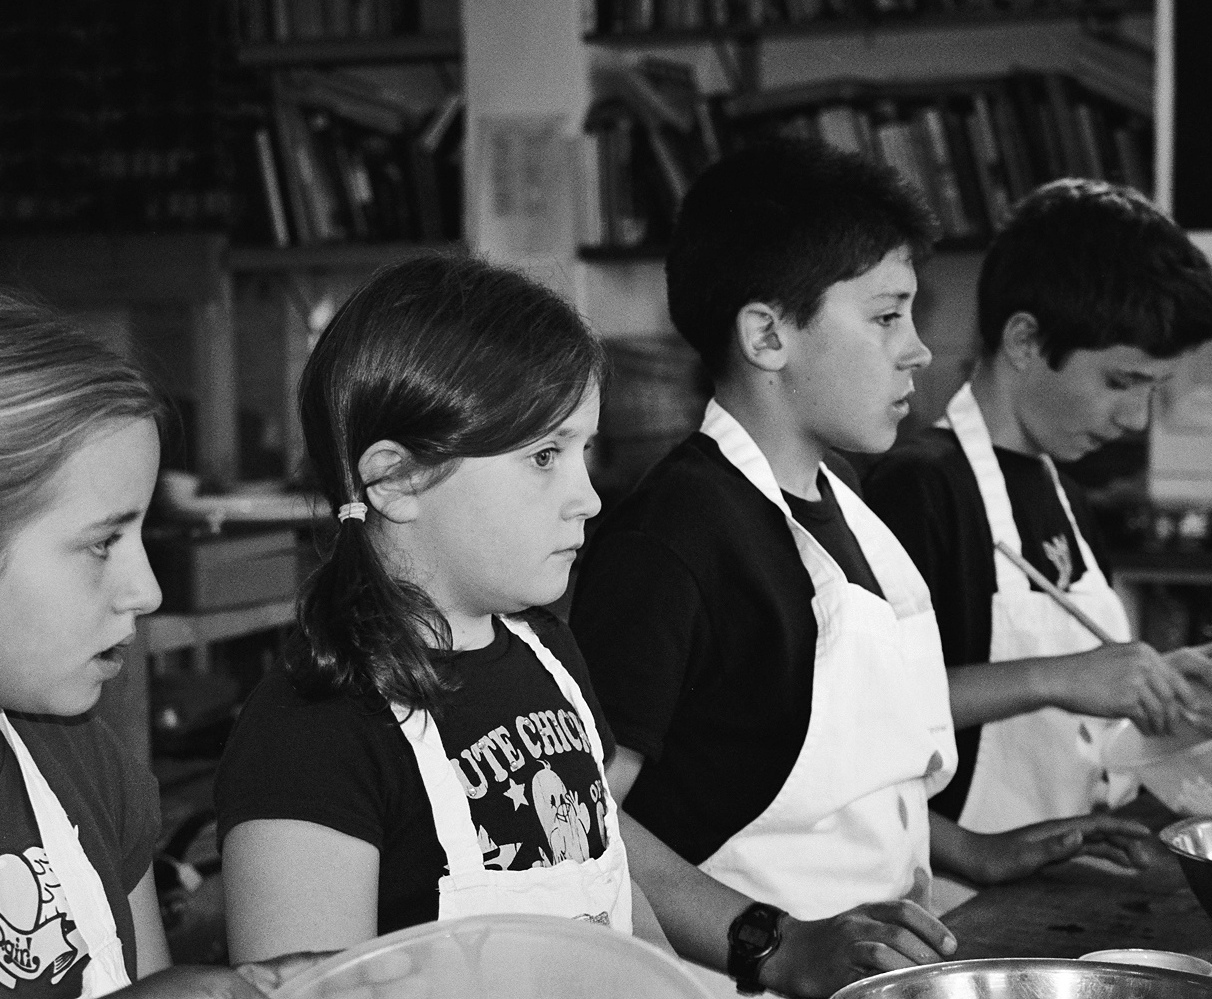 Barny's first students at QV Cookery School